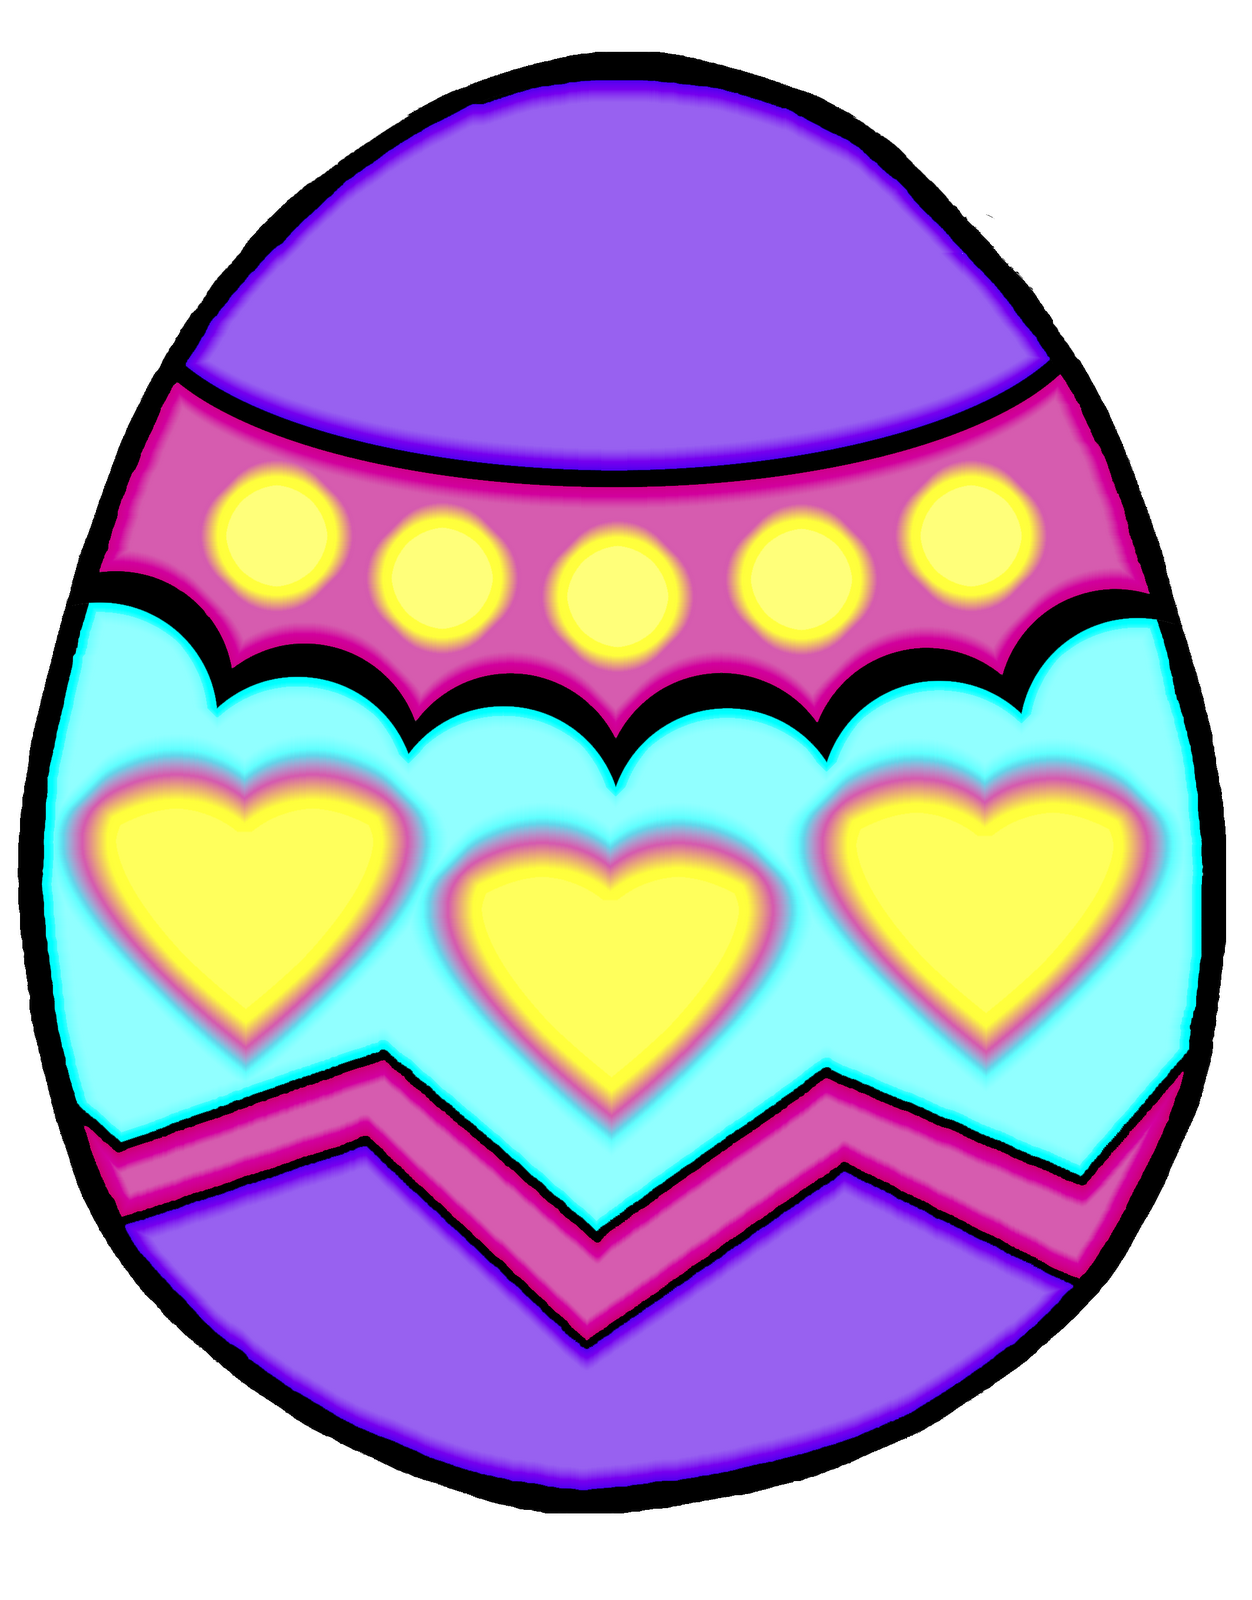 Easter Egg Clipart Black And White | Clipart Panda - Free ...